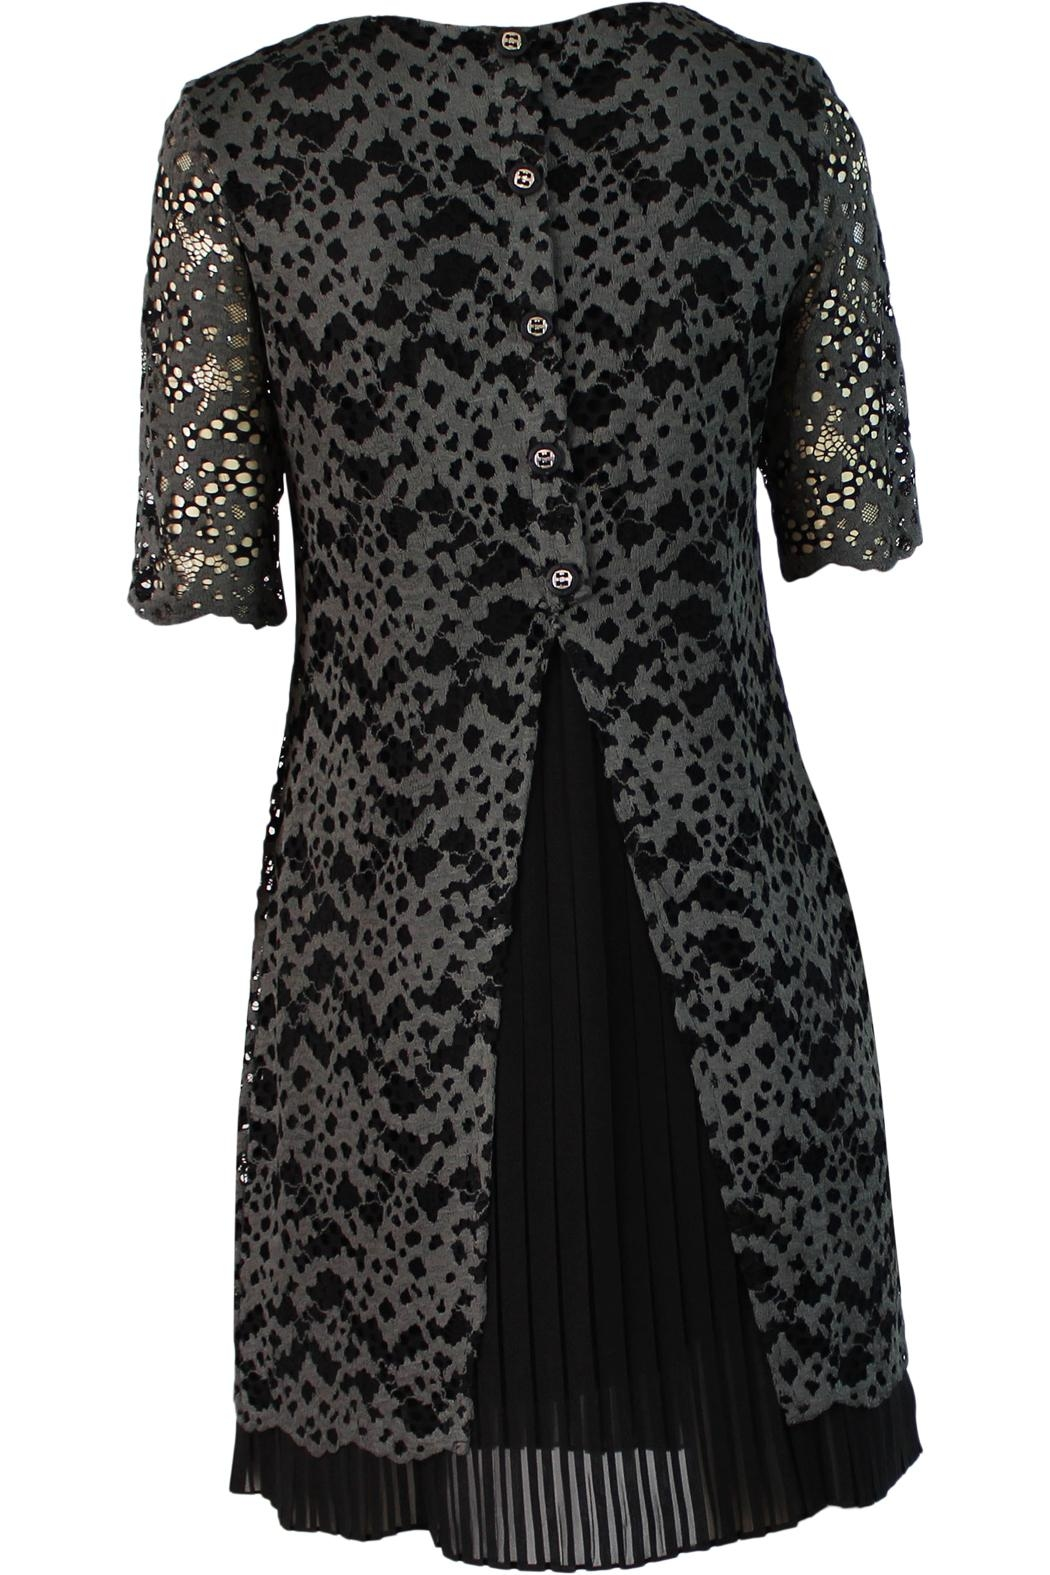 Marvy Fashion Boutique  Lace Dress - Main Image